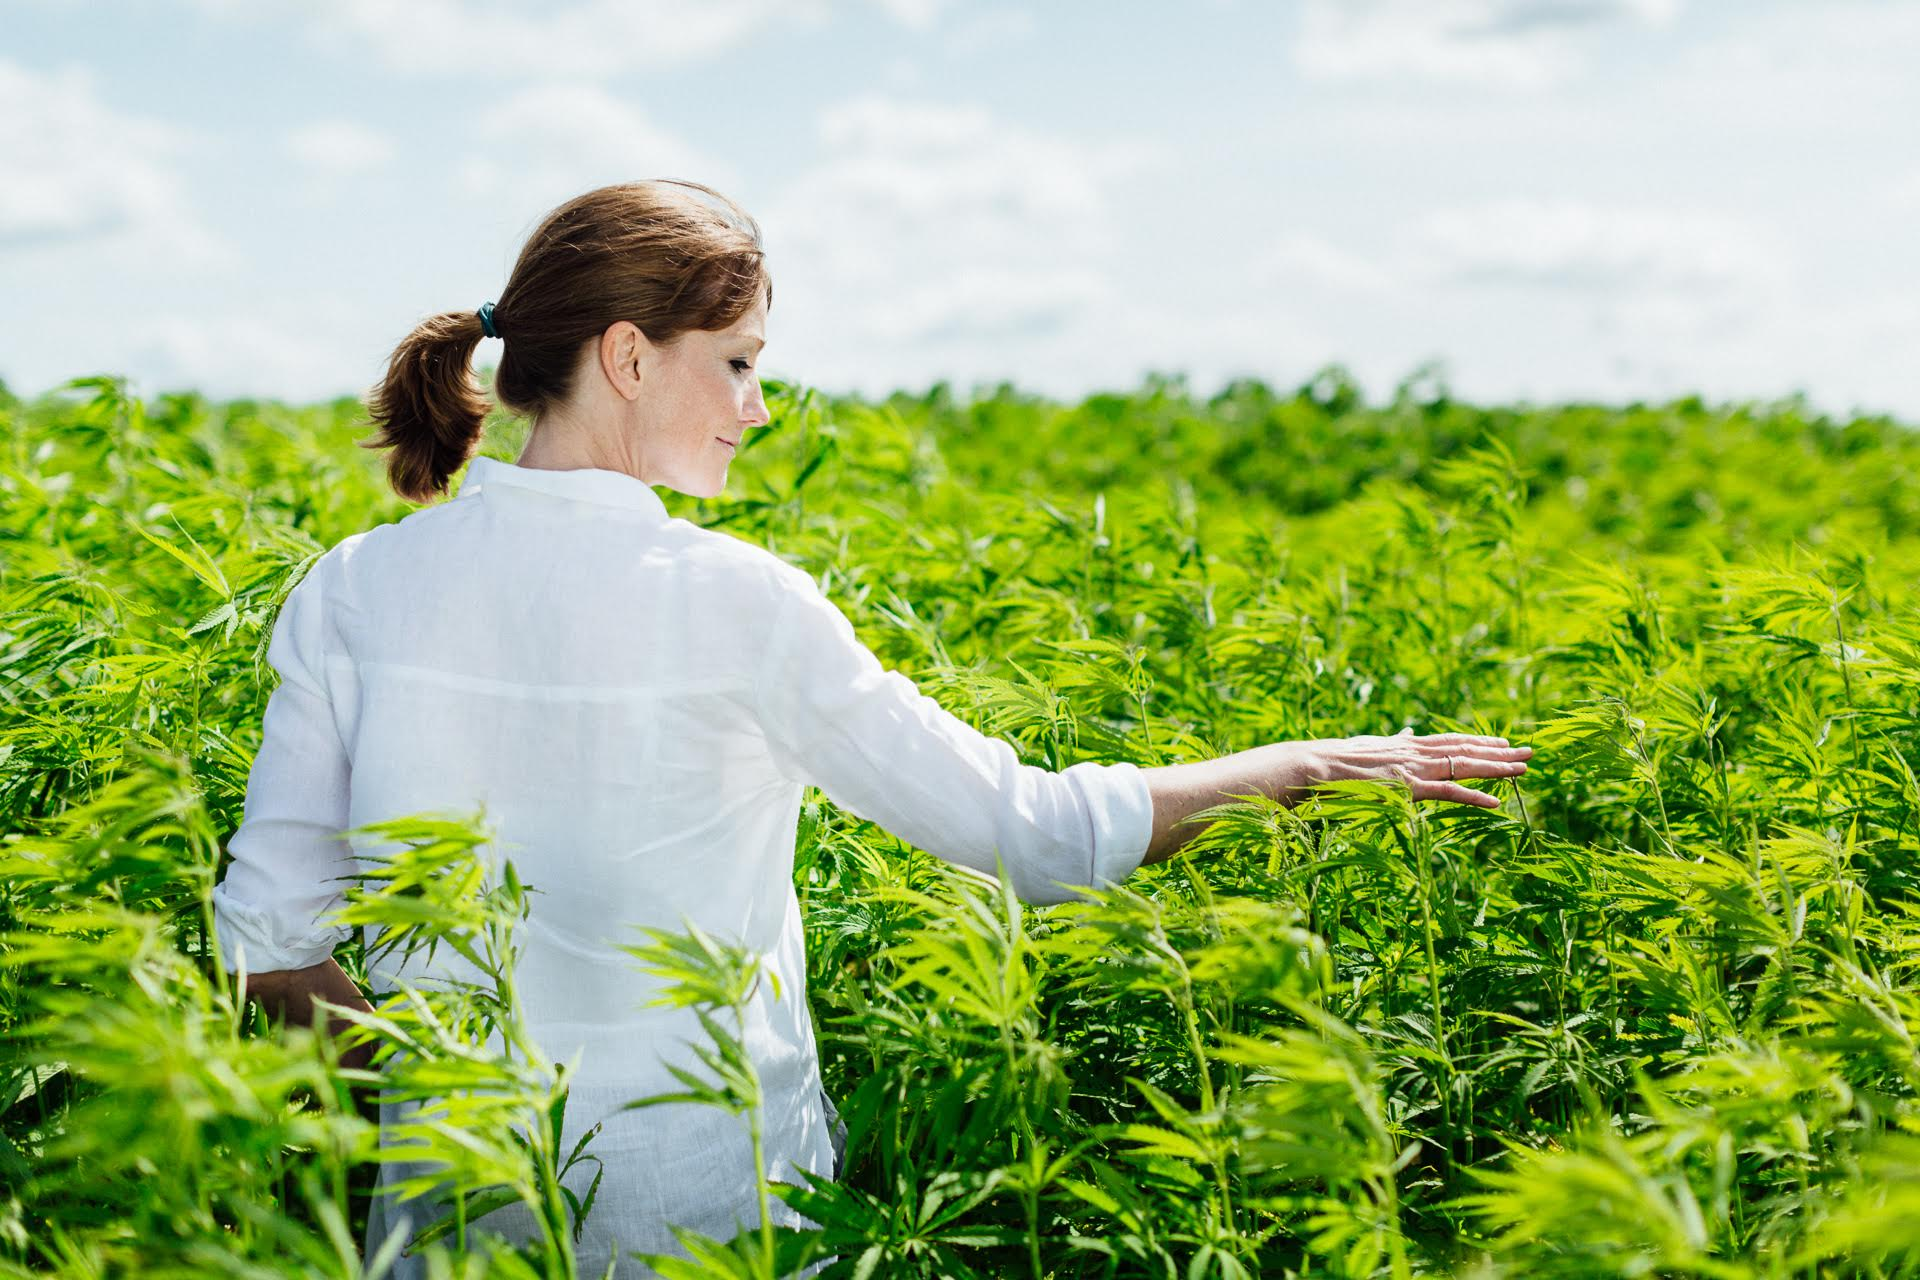 rachel kollerup makes hemp in denmark